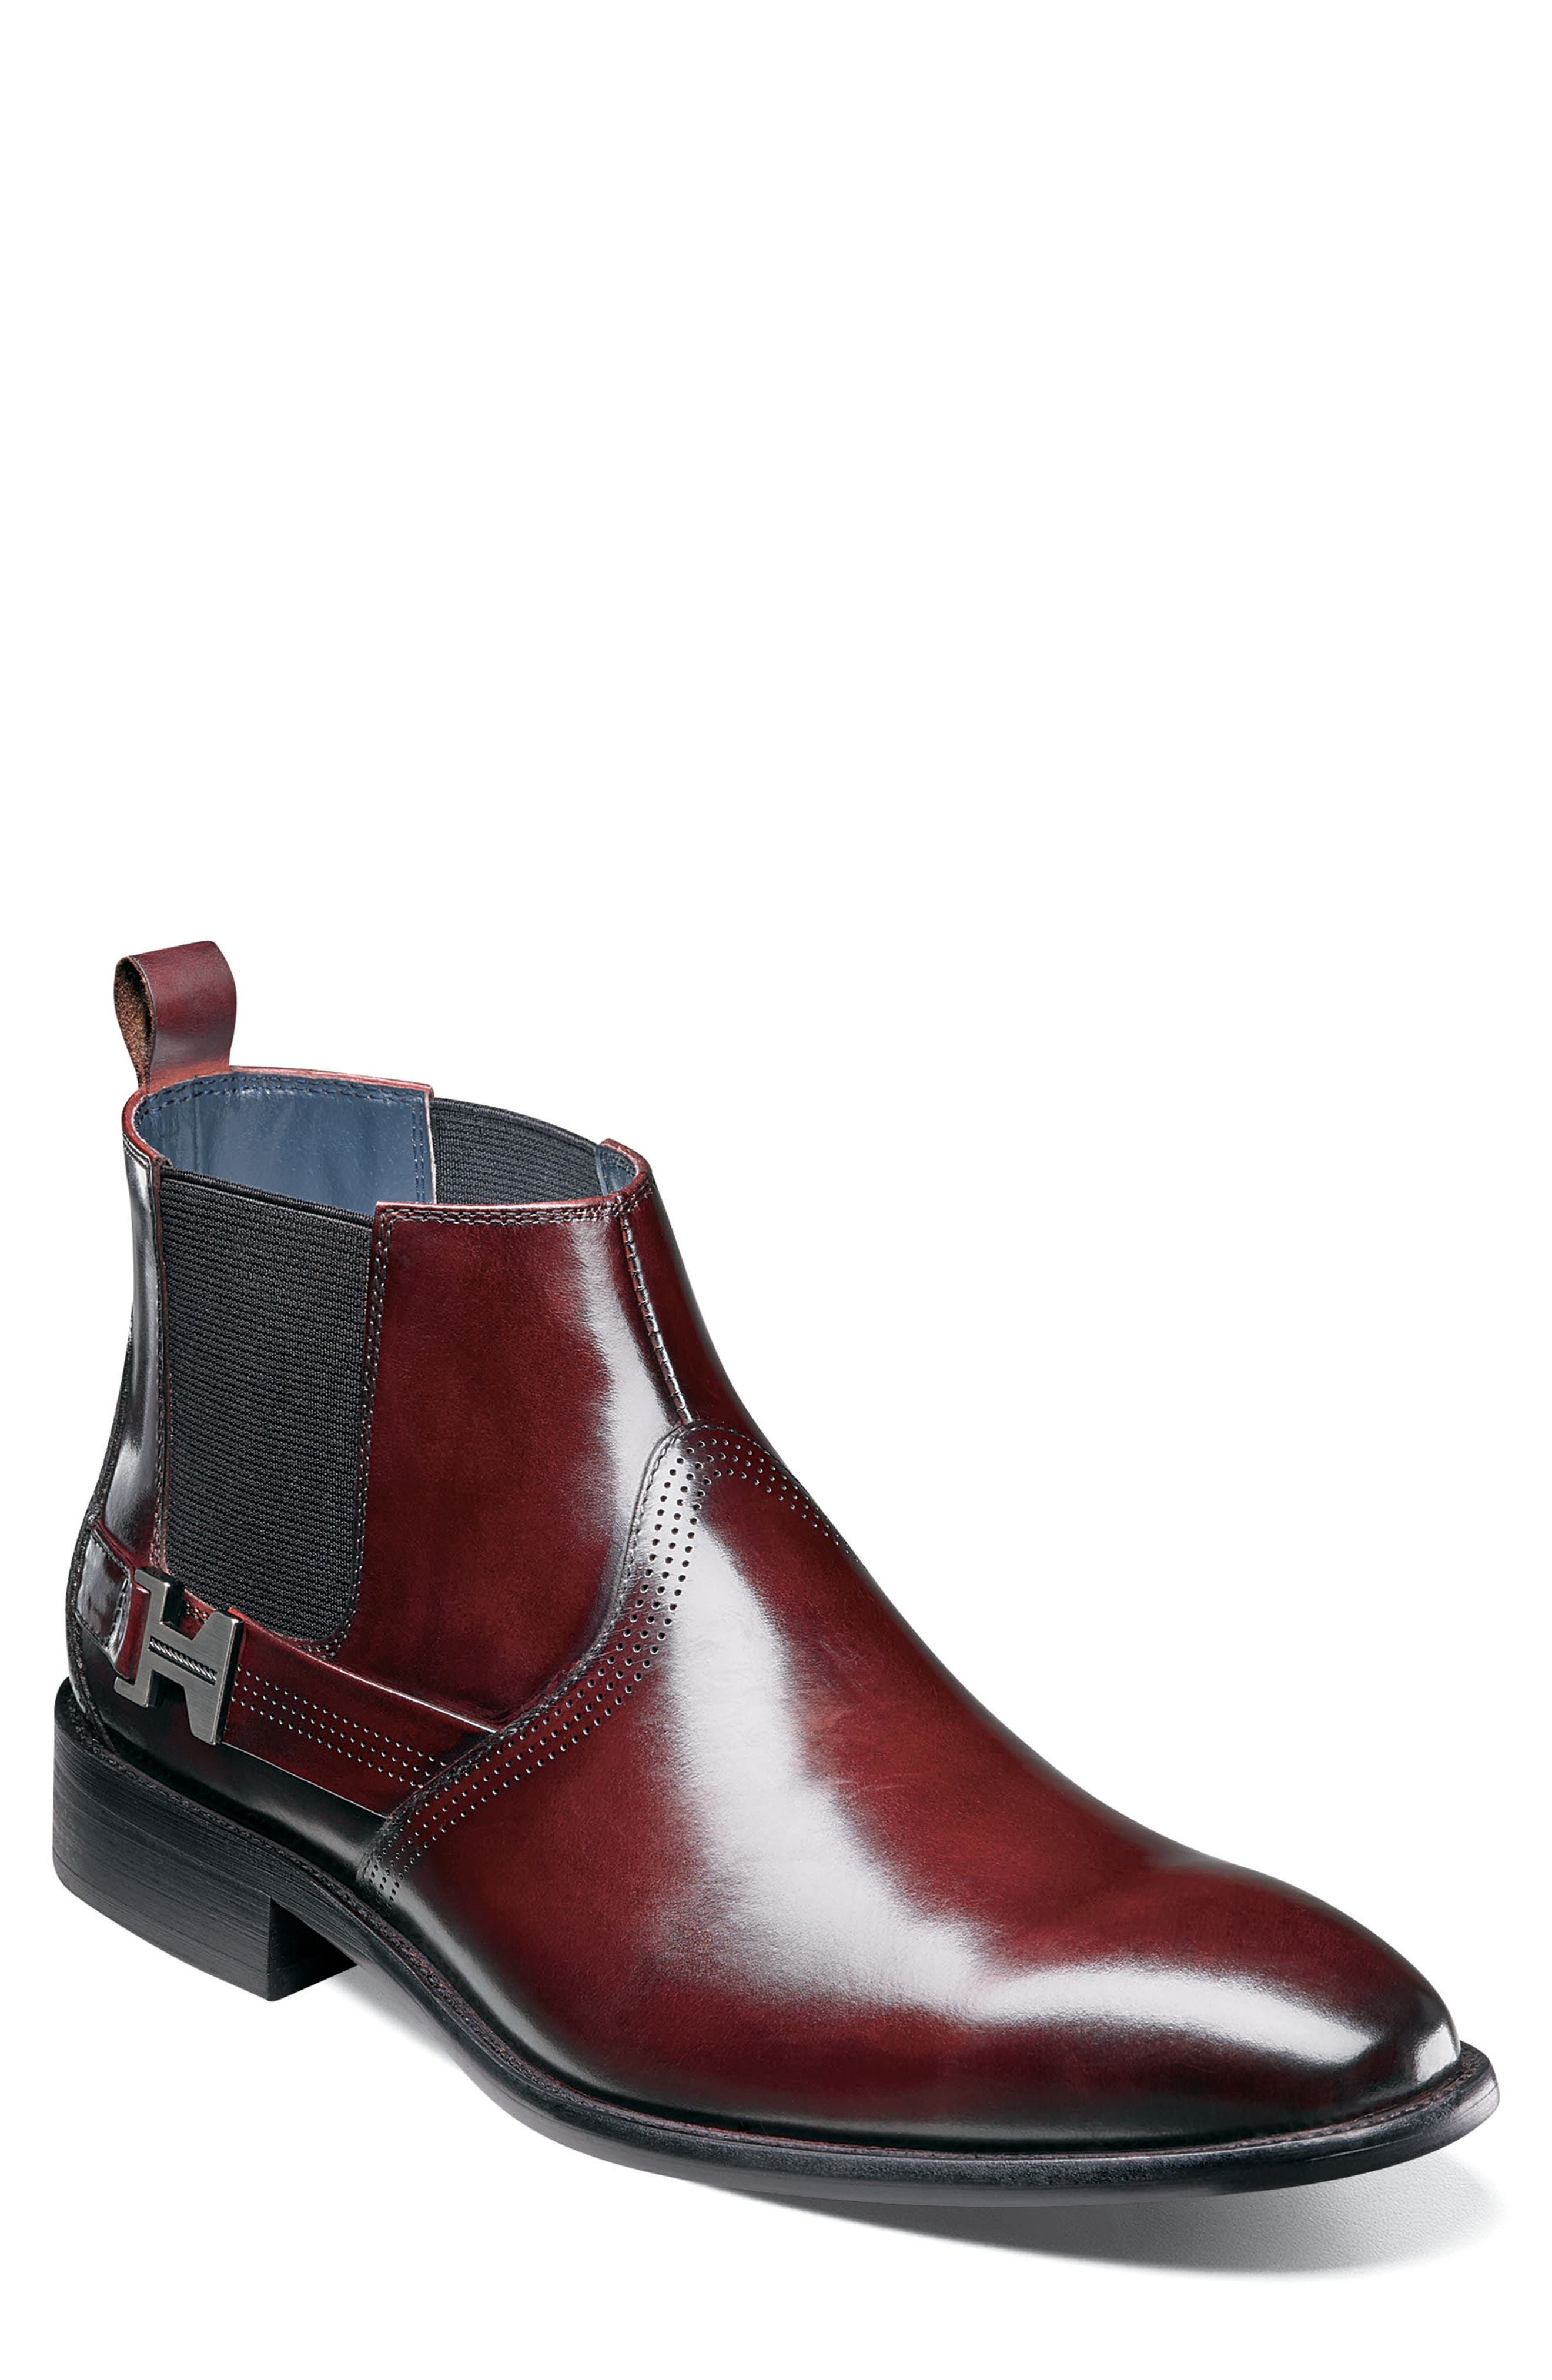 Stacy Adams Joffrey Chelsea Boot, Burgundy